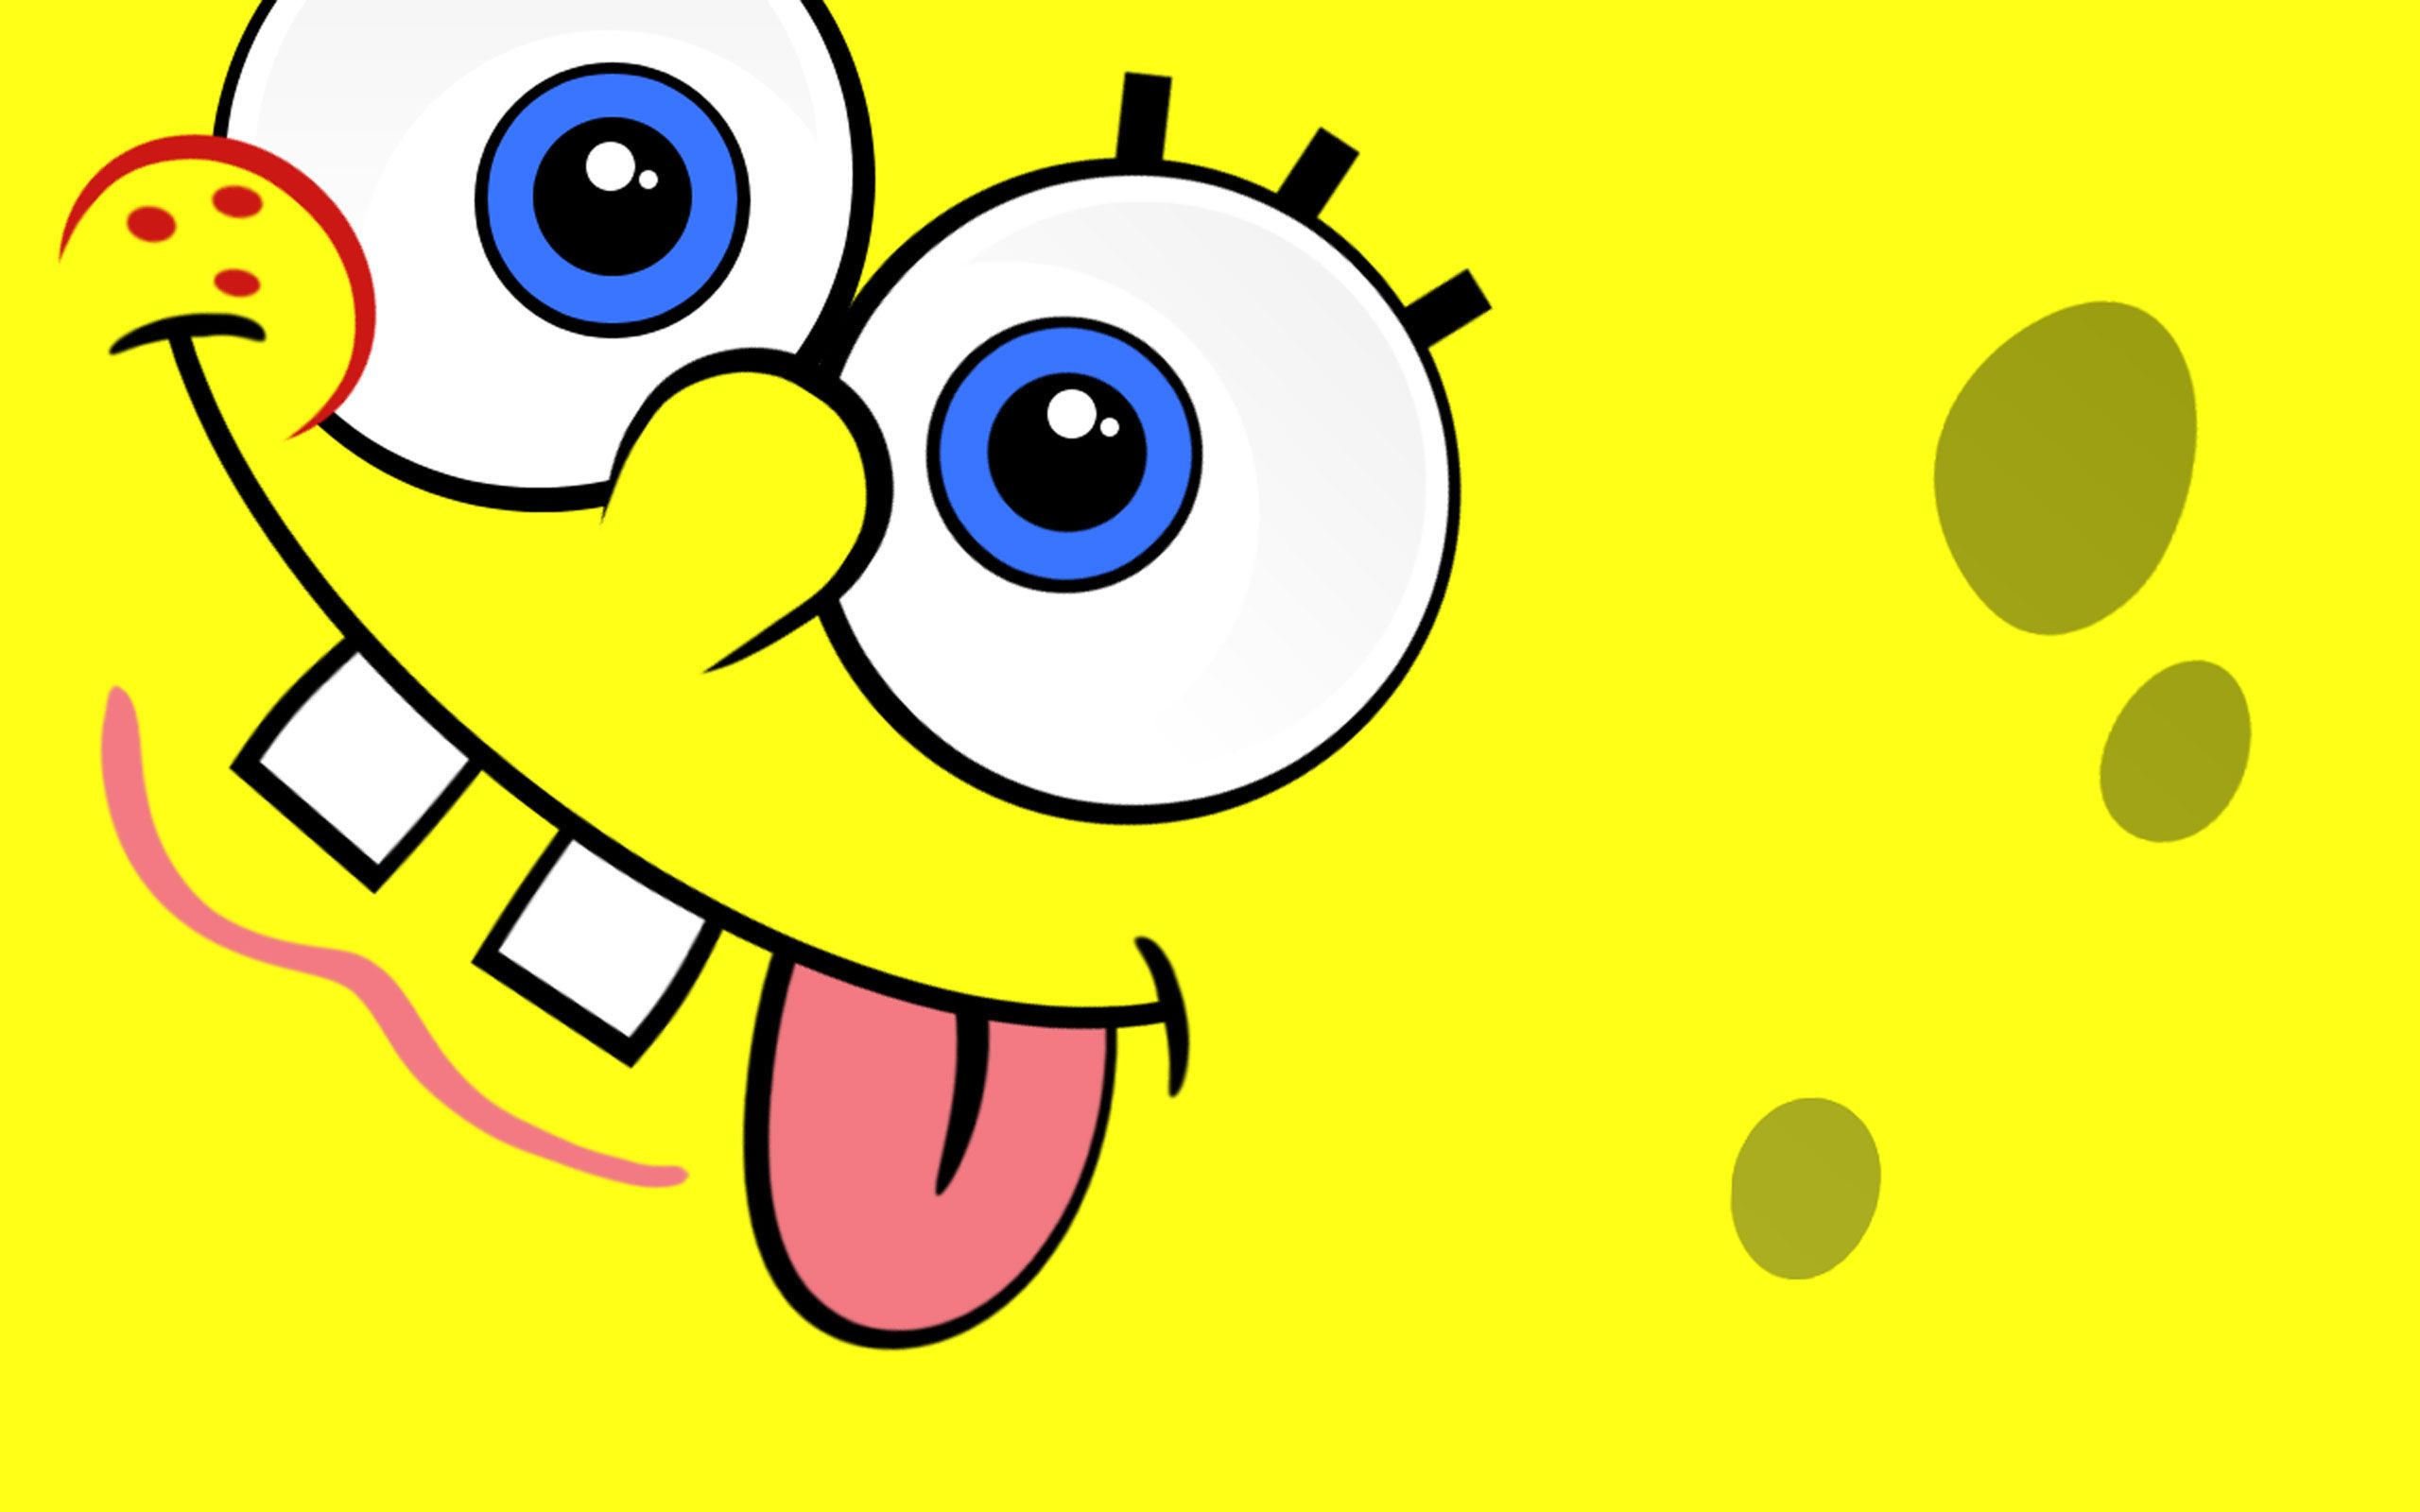 Free Spongebob Squarepants Funny Computer Desktop Wallpapers